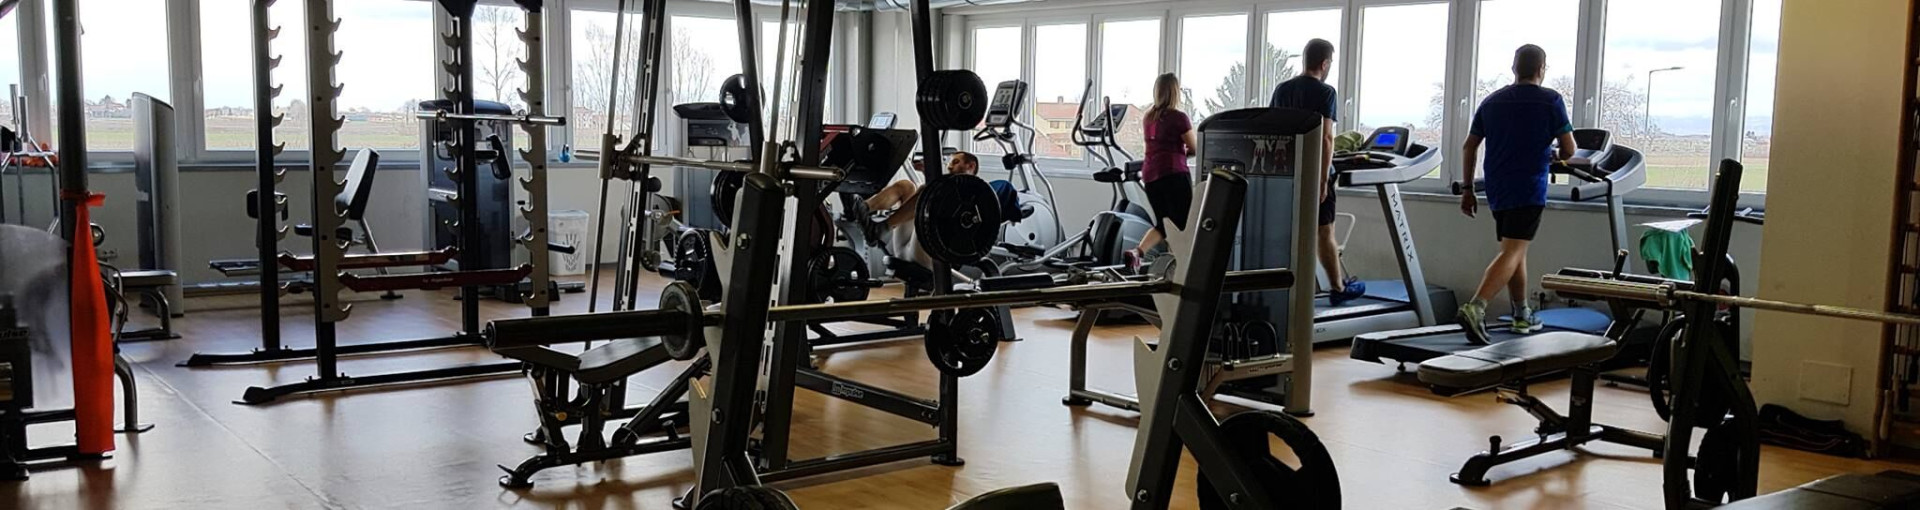 Top Gym - Peveragno